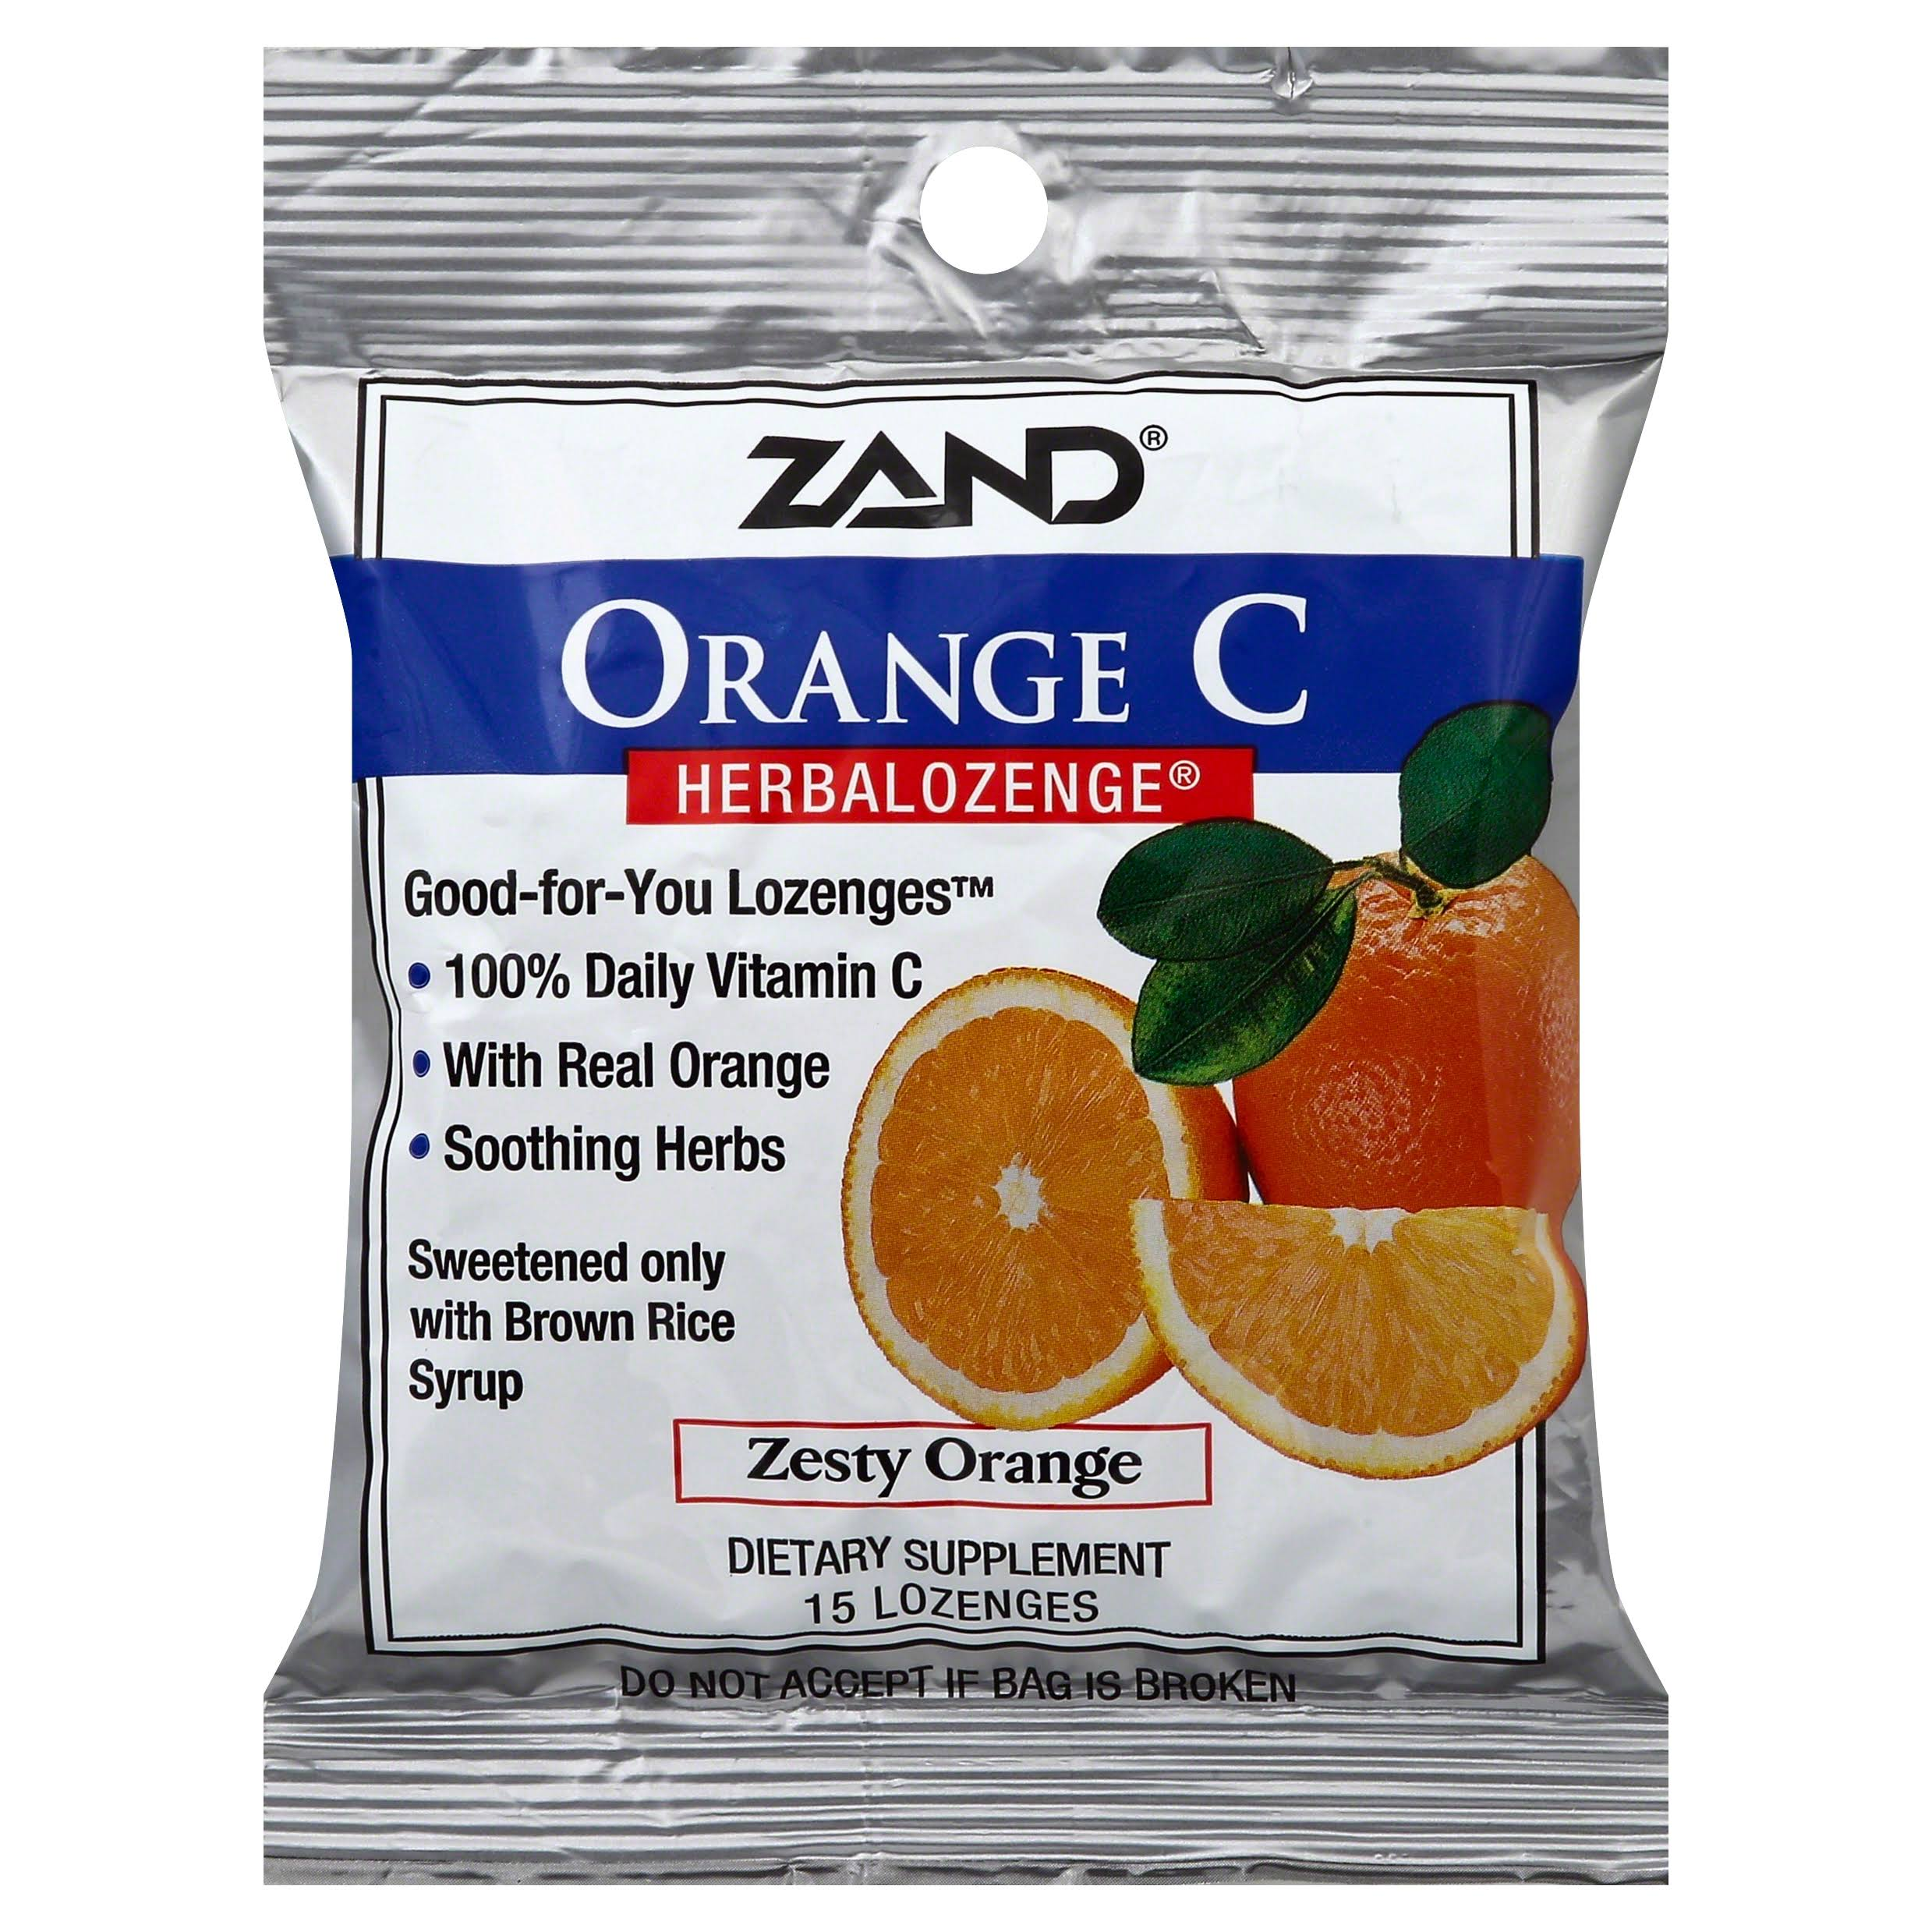 Zand HerbaLozenge Orange C, Natural Orange - 15 count